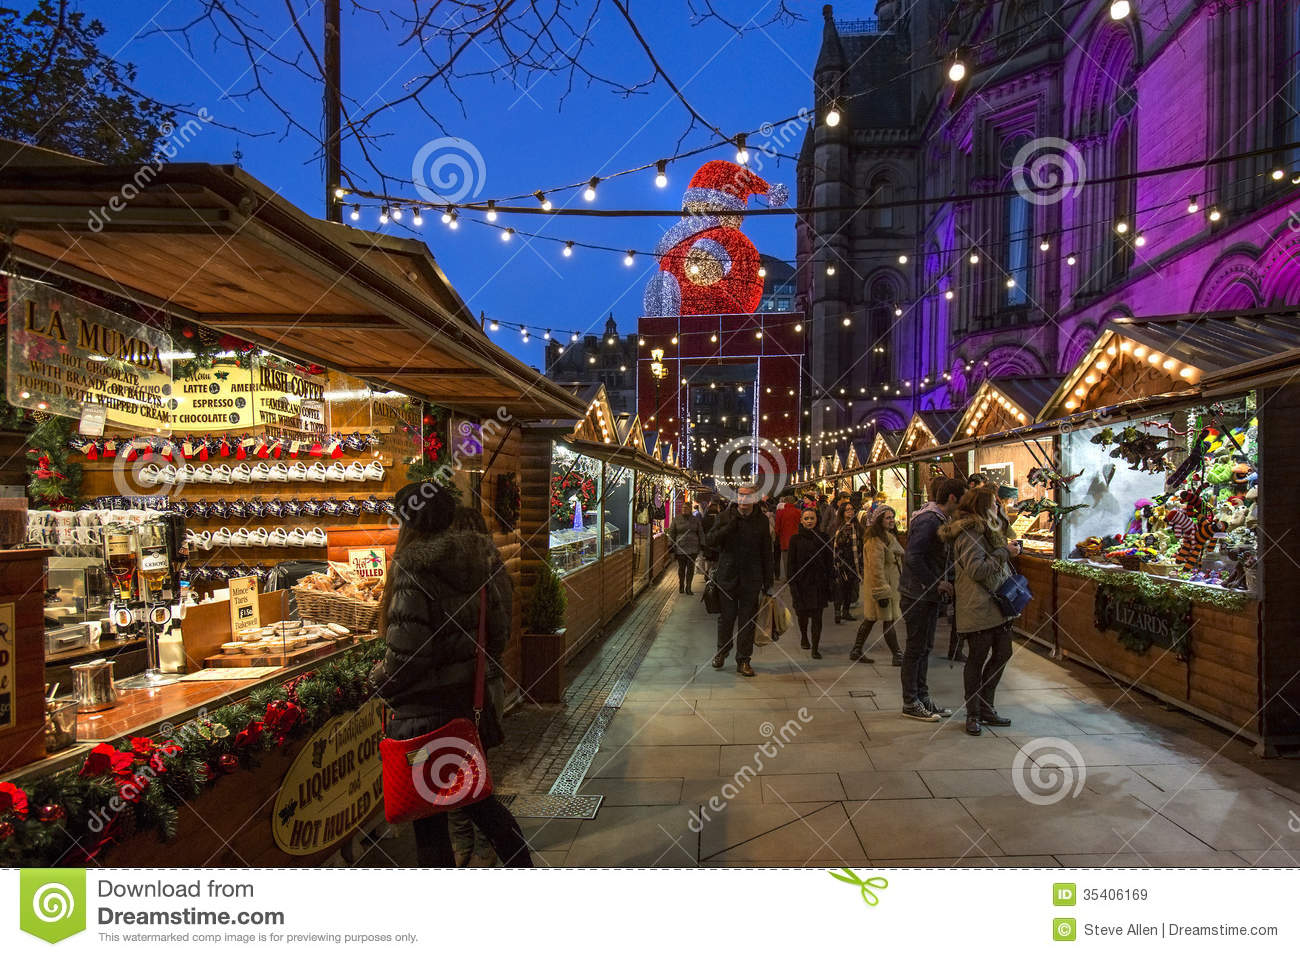 christmas market near the town hall in albert square in the city of manchester in the northwest of england - Christmas In The Northwest